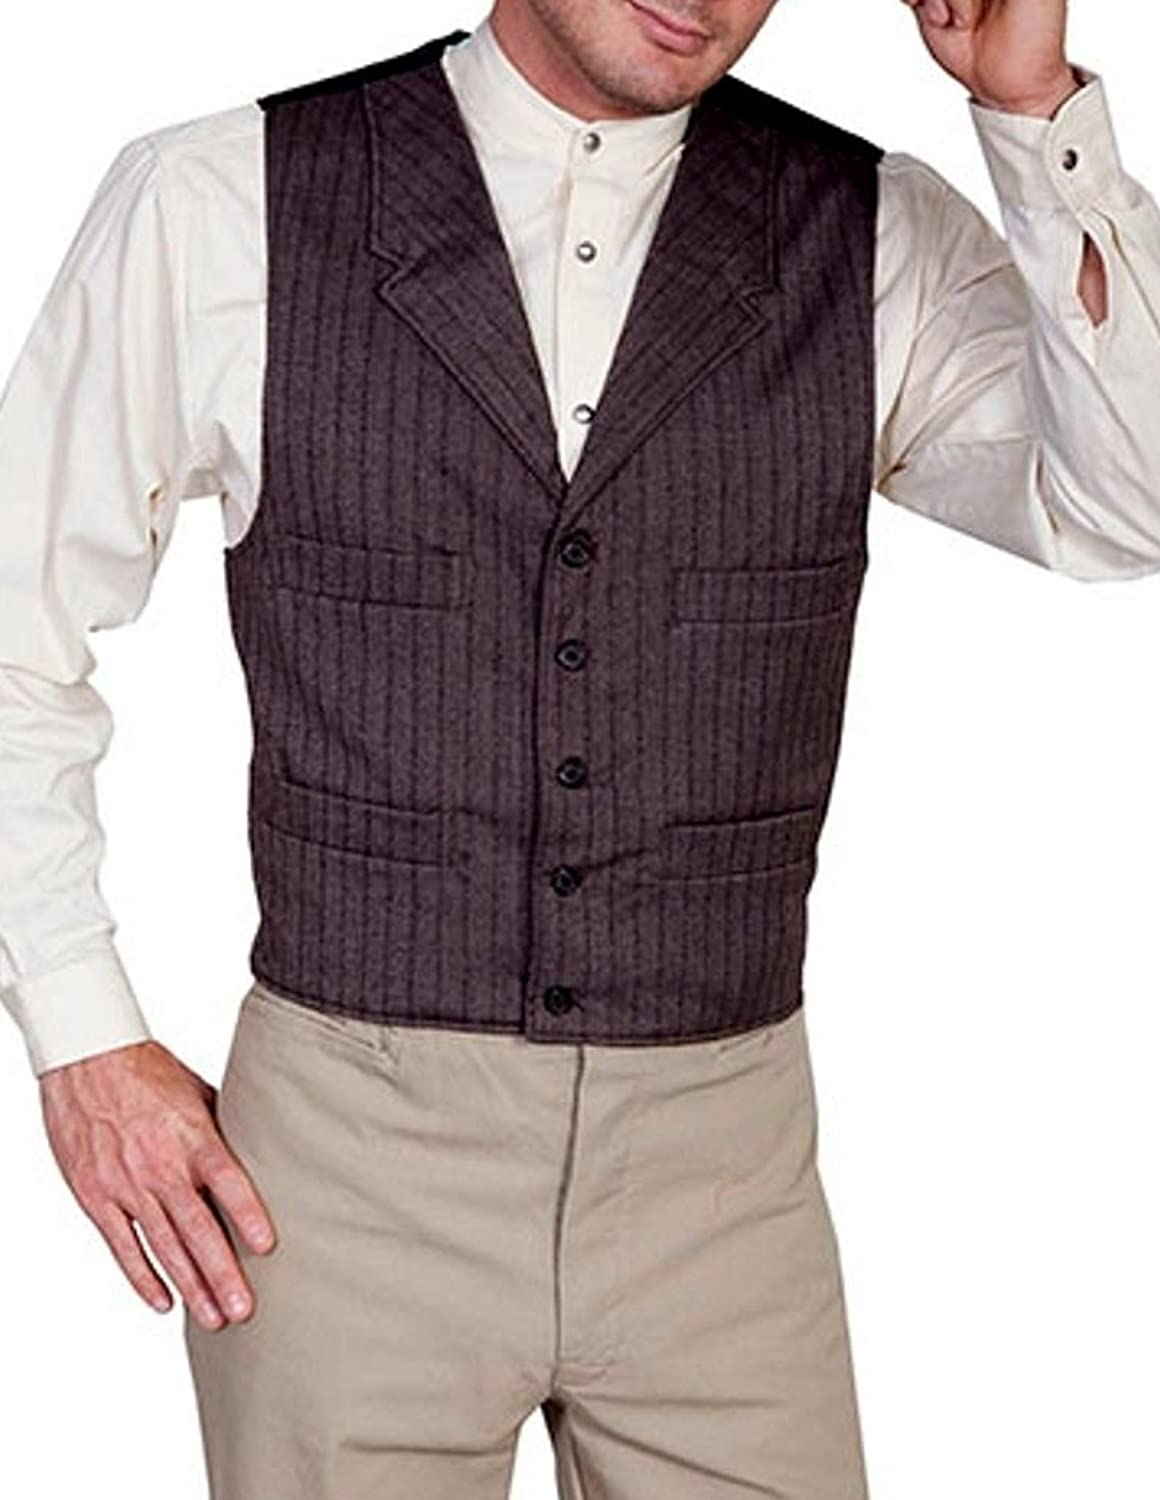 Men's Vintage Inspired Vests Wahmaker By Scully Mens Old West Four Pocket Striped Vest - 541164-Gry $146.37 AT vintagedancer.com